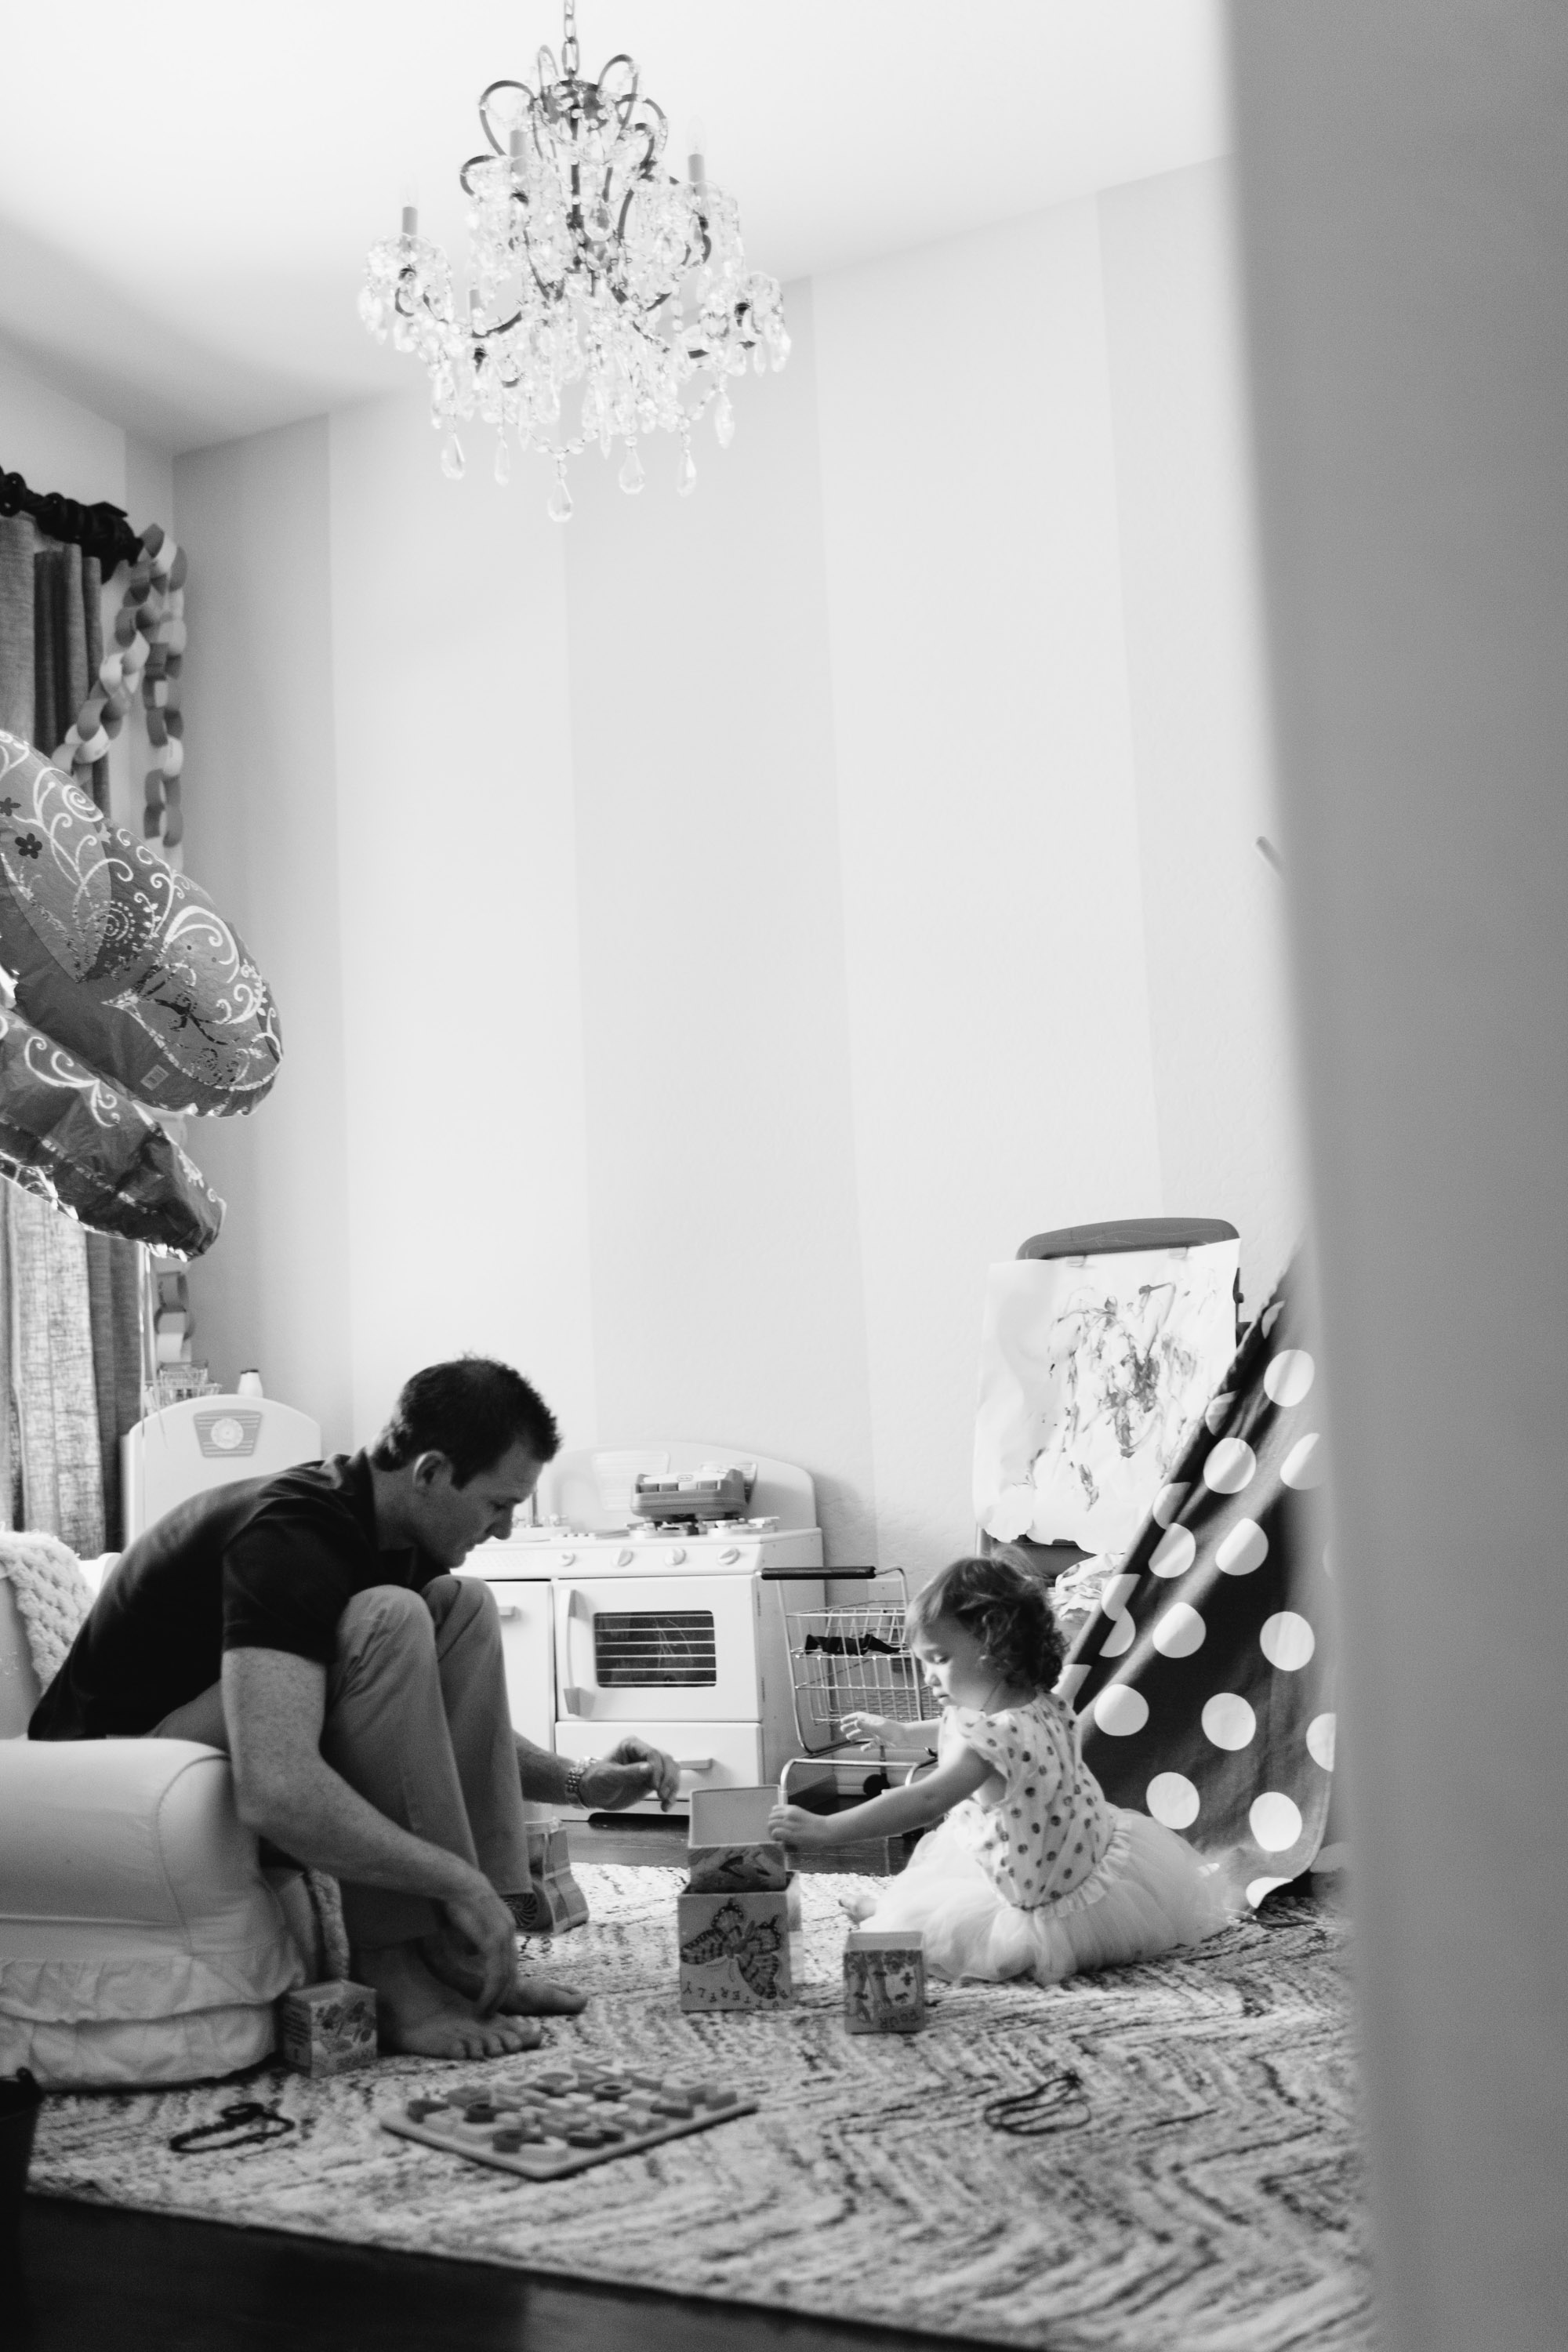 family in home lifestyle photo ©ten22 studio